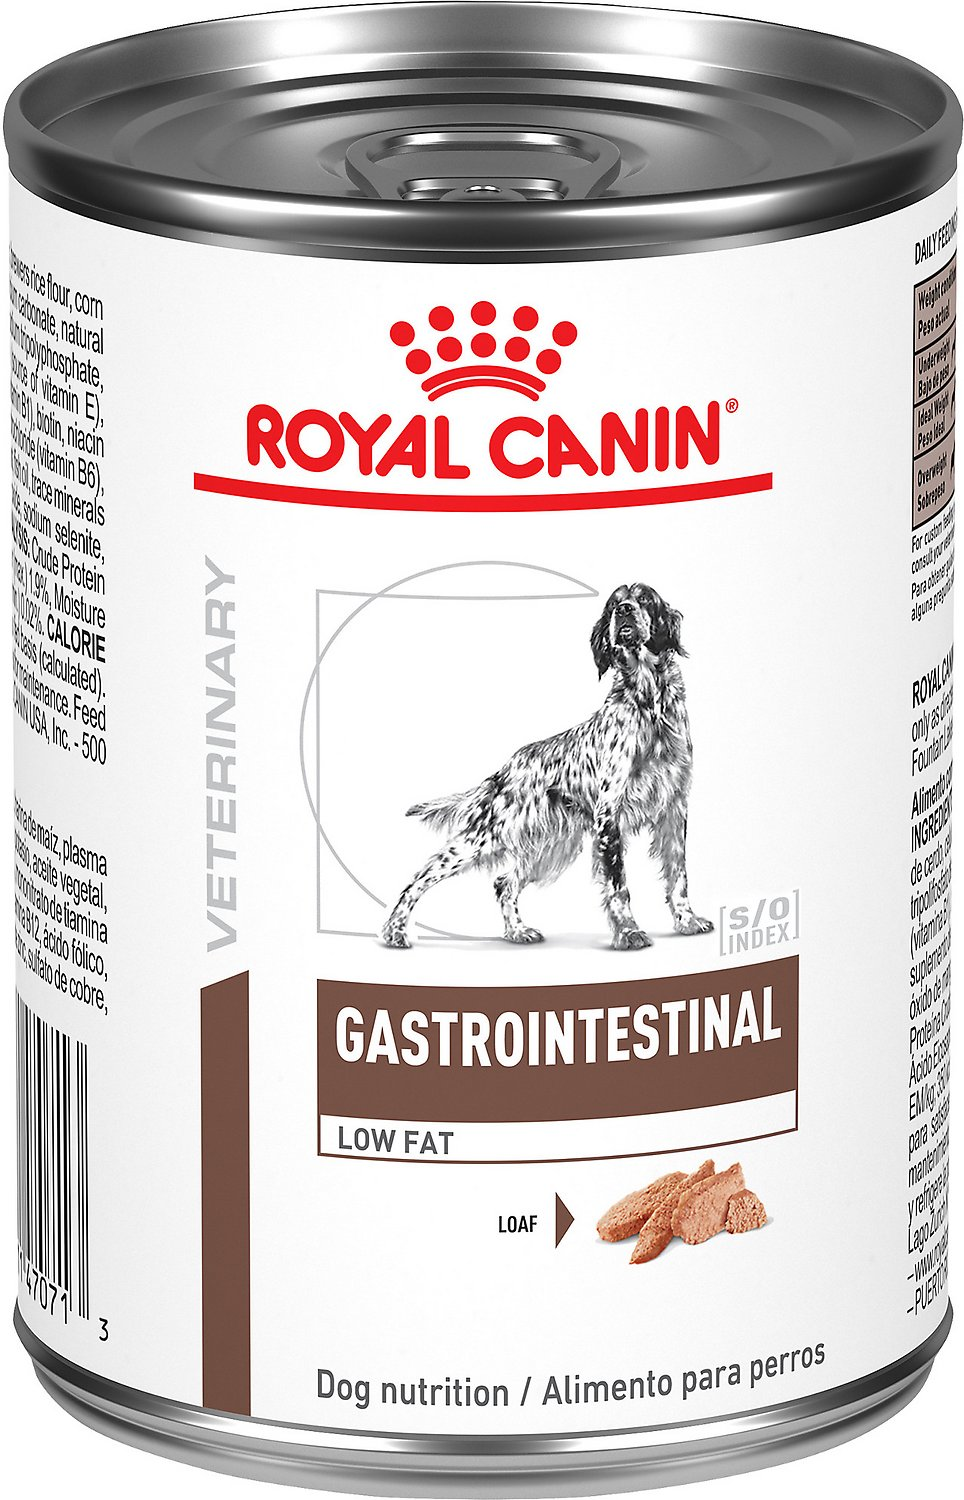 Royal Canin Gastrointestinal Dog Food